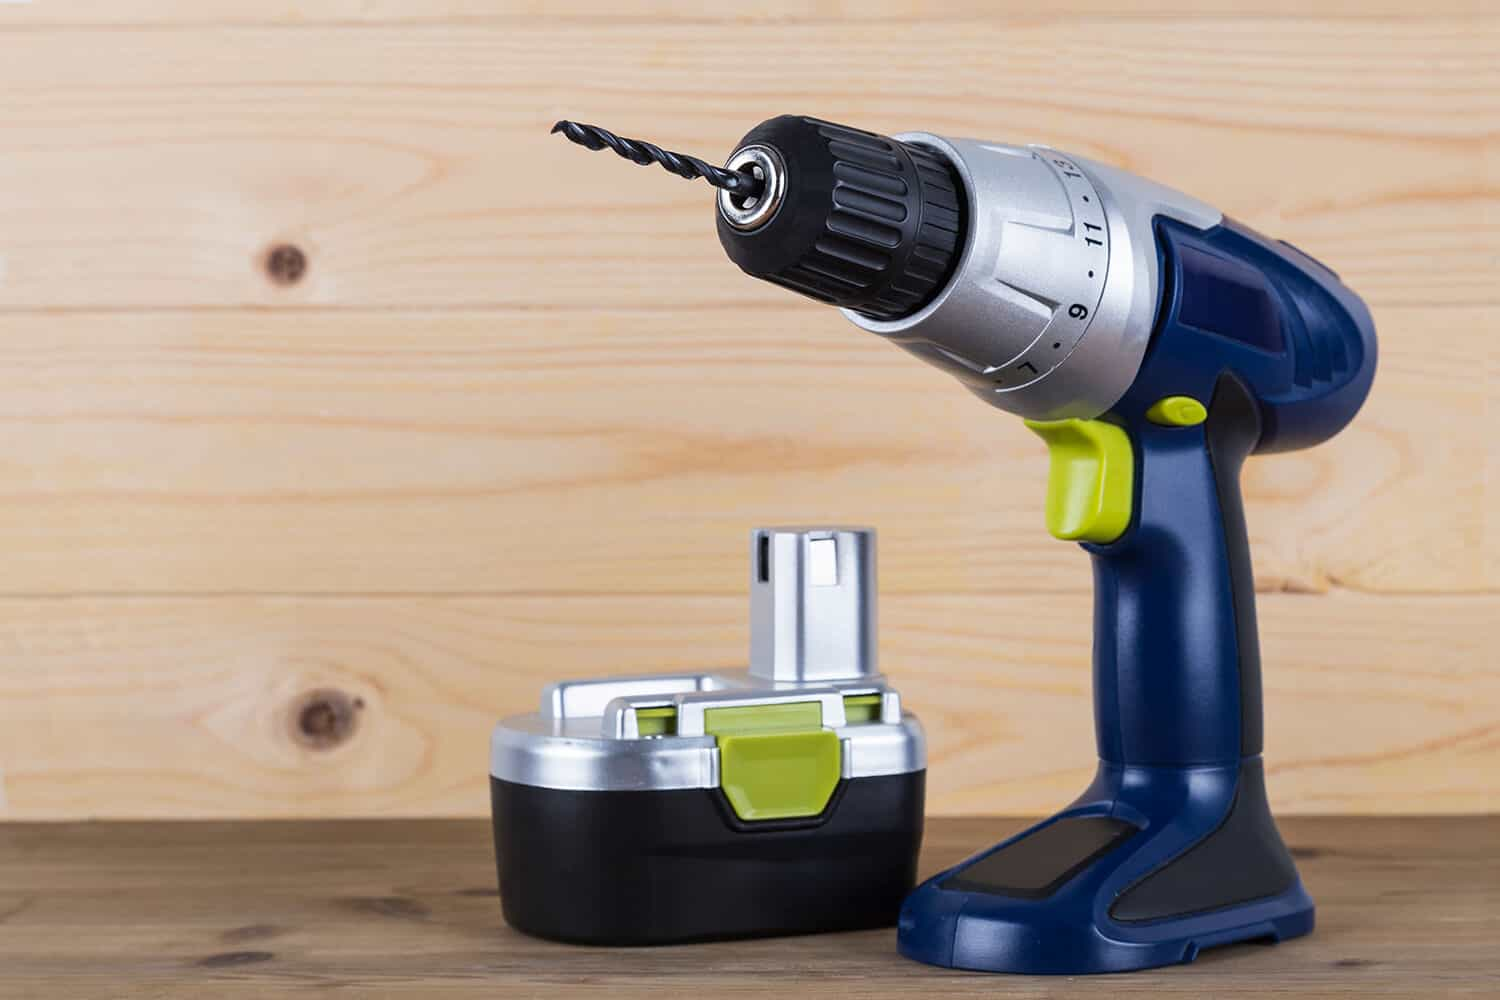 How to Test a Cordless Drill Battery Charger